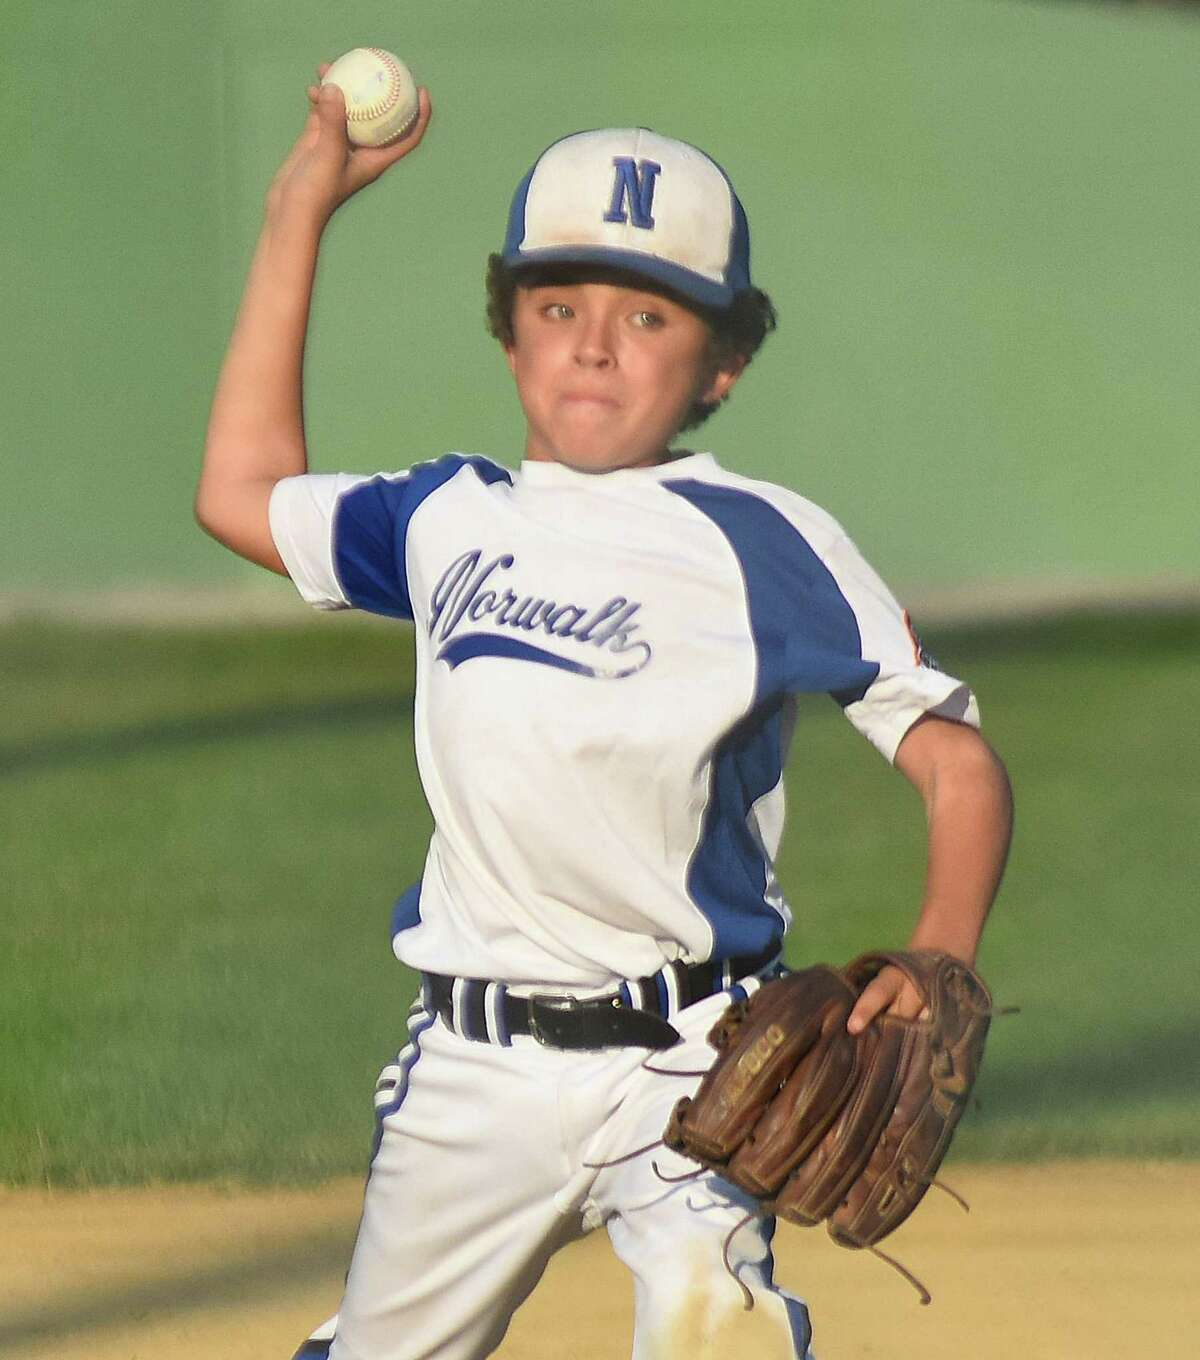 Norwalk pitcher Cam Rice fires to the plate during Tuesday's Cal Ripken Baseball 9-year-old New England Regional Tournament quarterfinal in Freetown, Mass. Norwalk defeated Cranston, R.I., to advance to the semifinals.